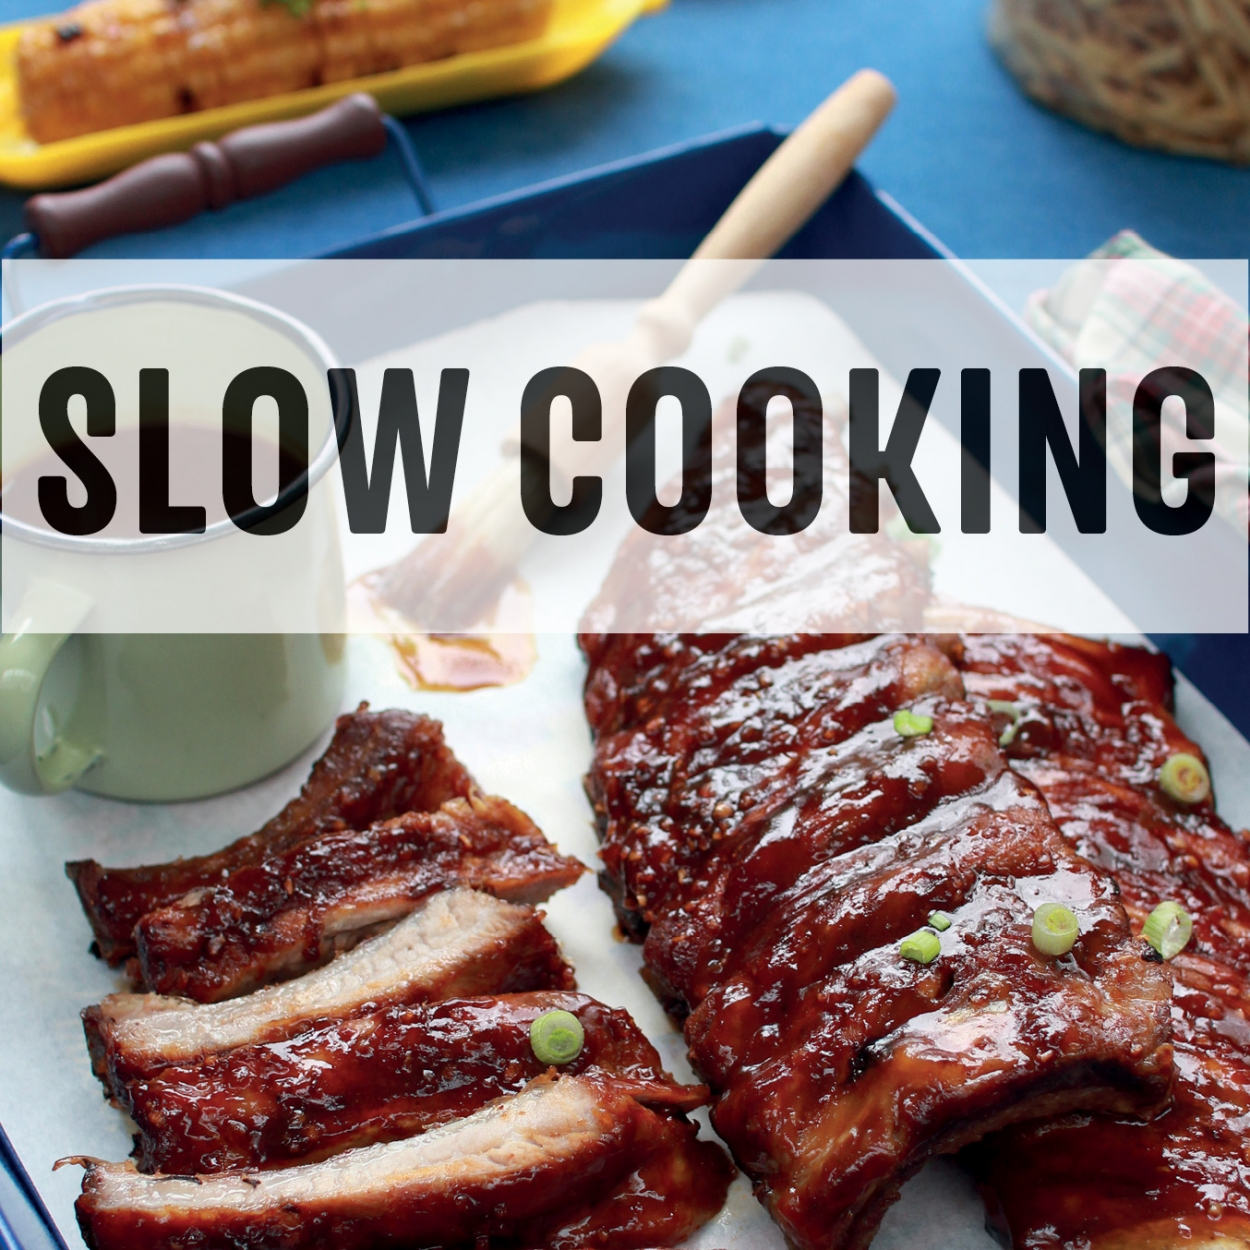 Slow Cooking Bio